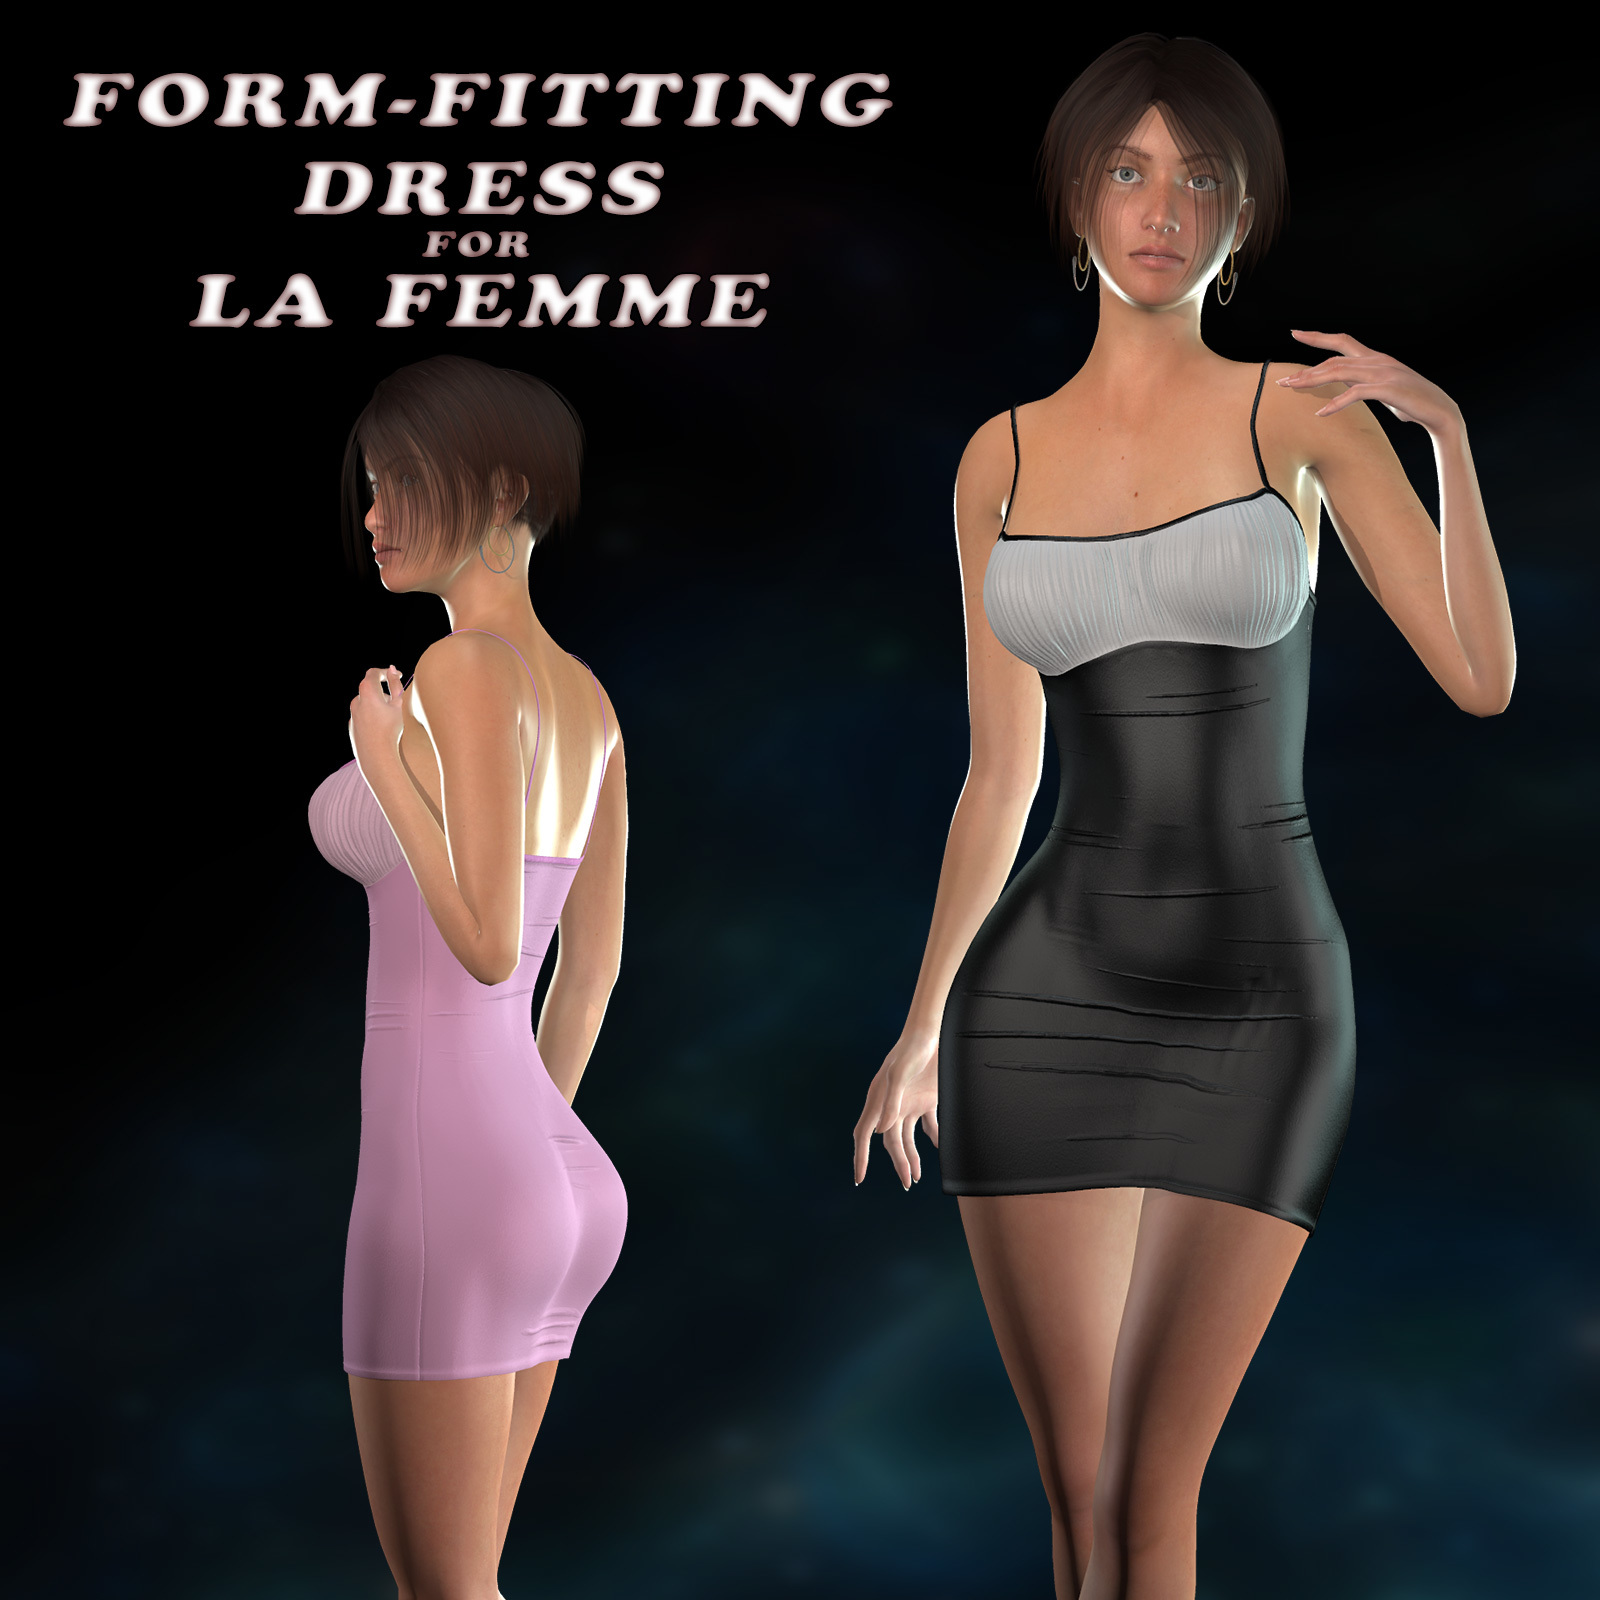 Form-Fitting Dress for La Femme by nemirc